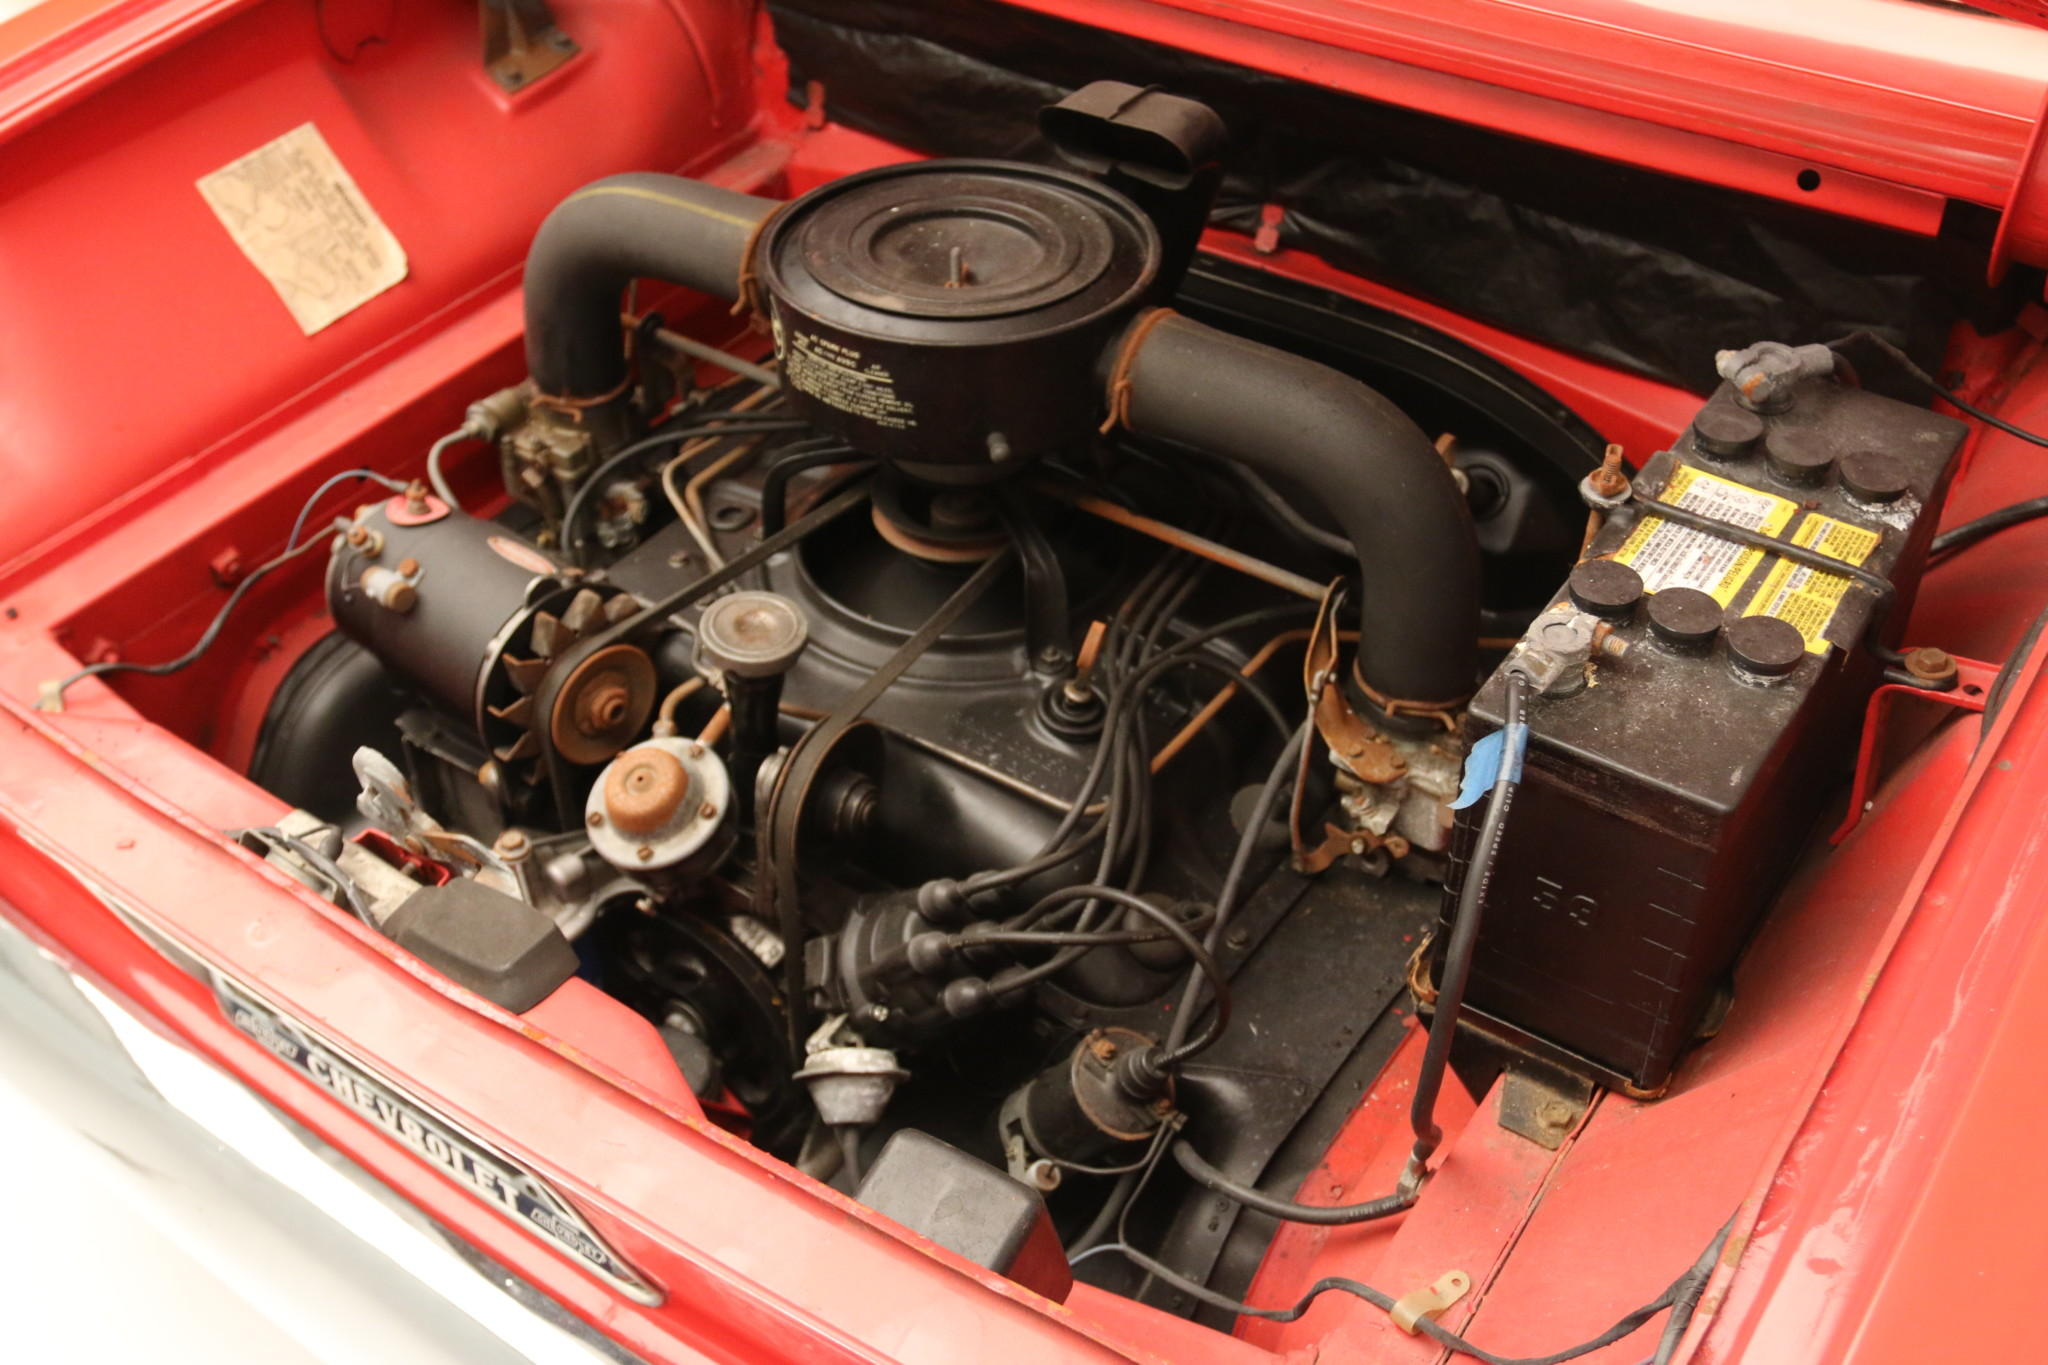 1960 Chevrolet Corvair 700 engine